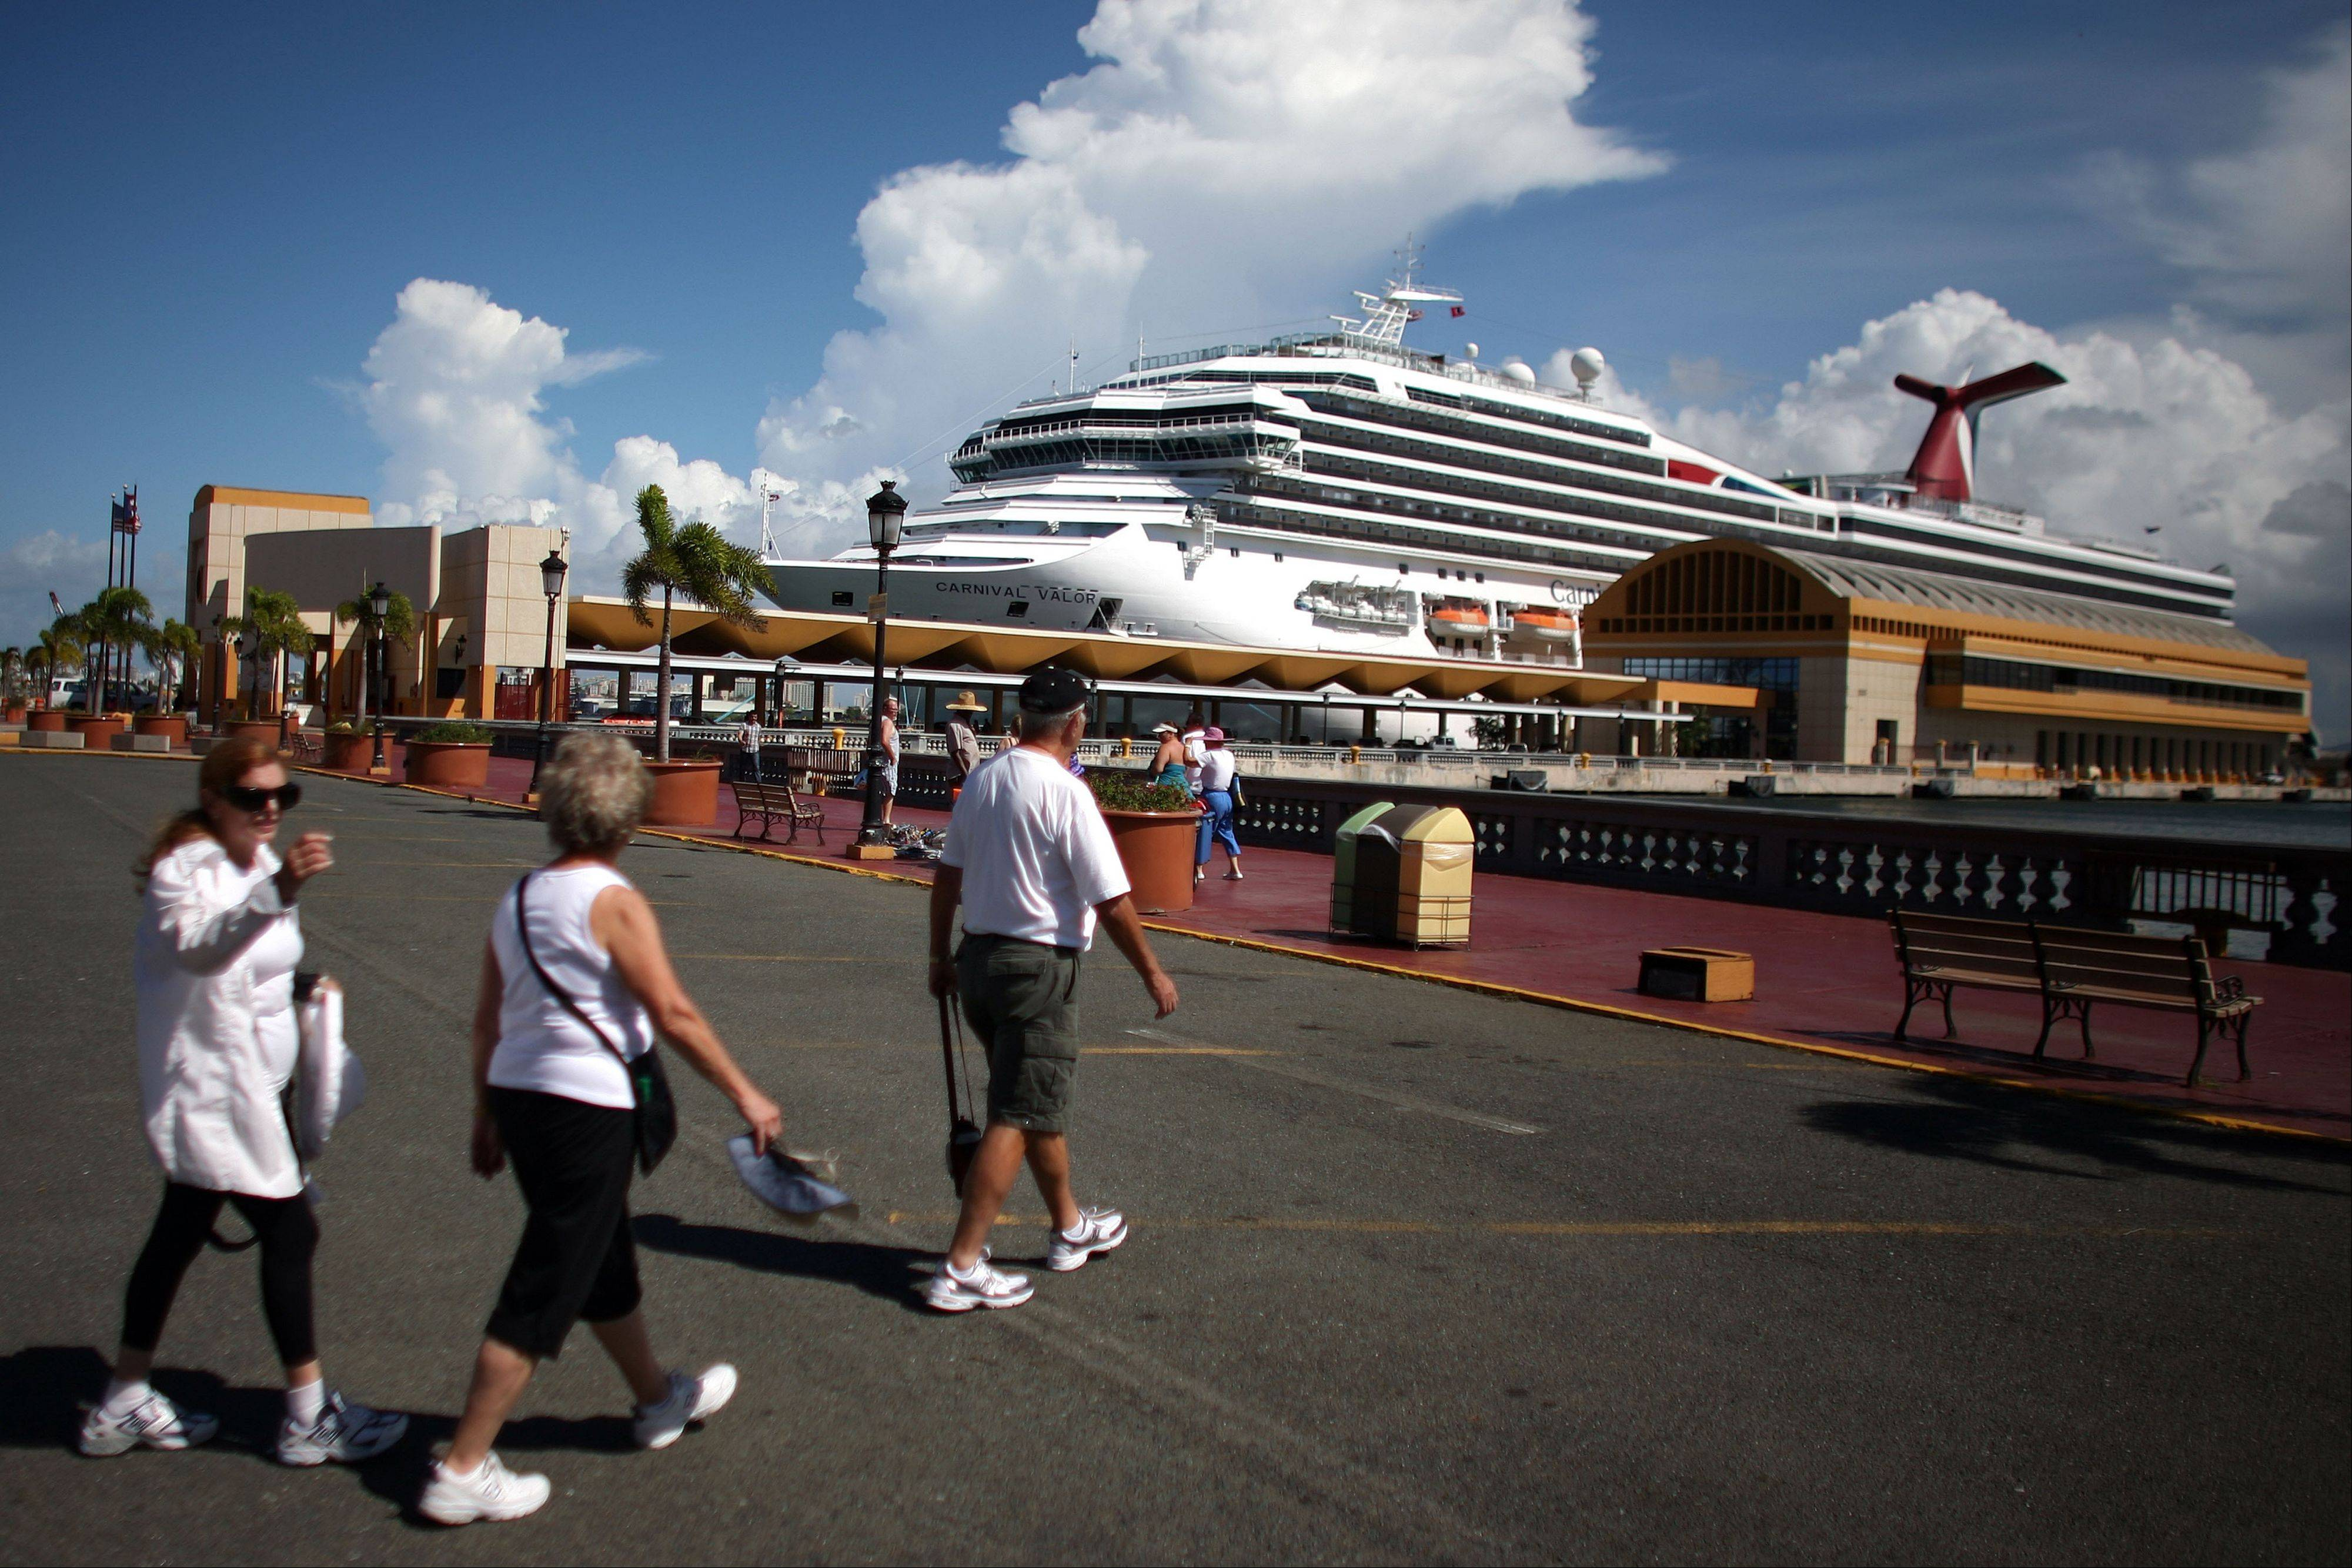 Tourists walk through a parking lot in front of a pier where a cruise ship is docked in Old San Juan, Puerto Rico. Trade groups say the flourishing cruise ship industry injects about $2 billion a year into the economies of the Caribbean, the world�s No. 1 cruise destination, but critics complain that it produces relatively little local revenue because so many passengers dine, shop and purchase heavily marked-up shore excursions on the boats or splurge at international chain shops on the piers.